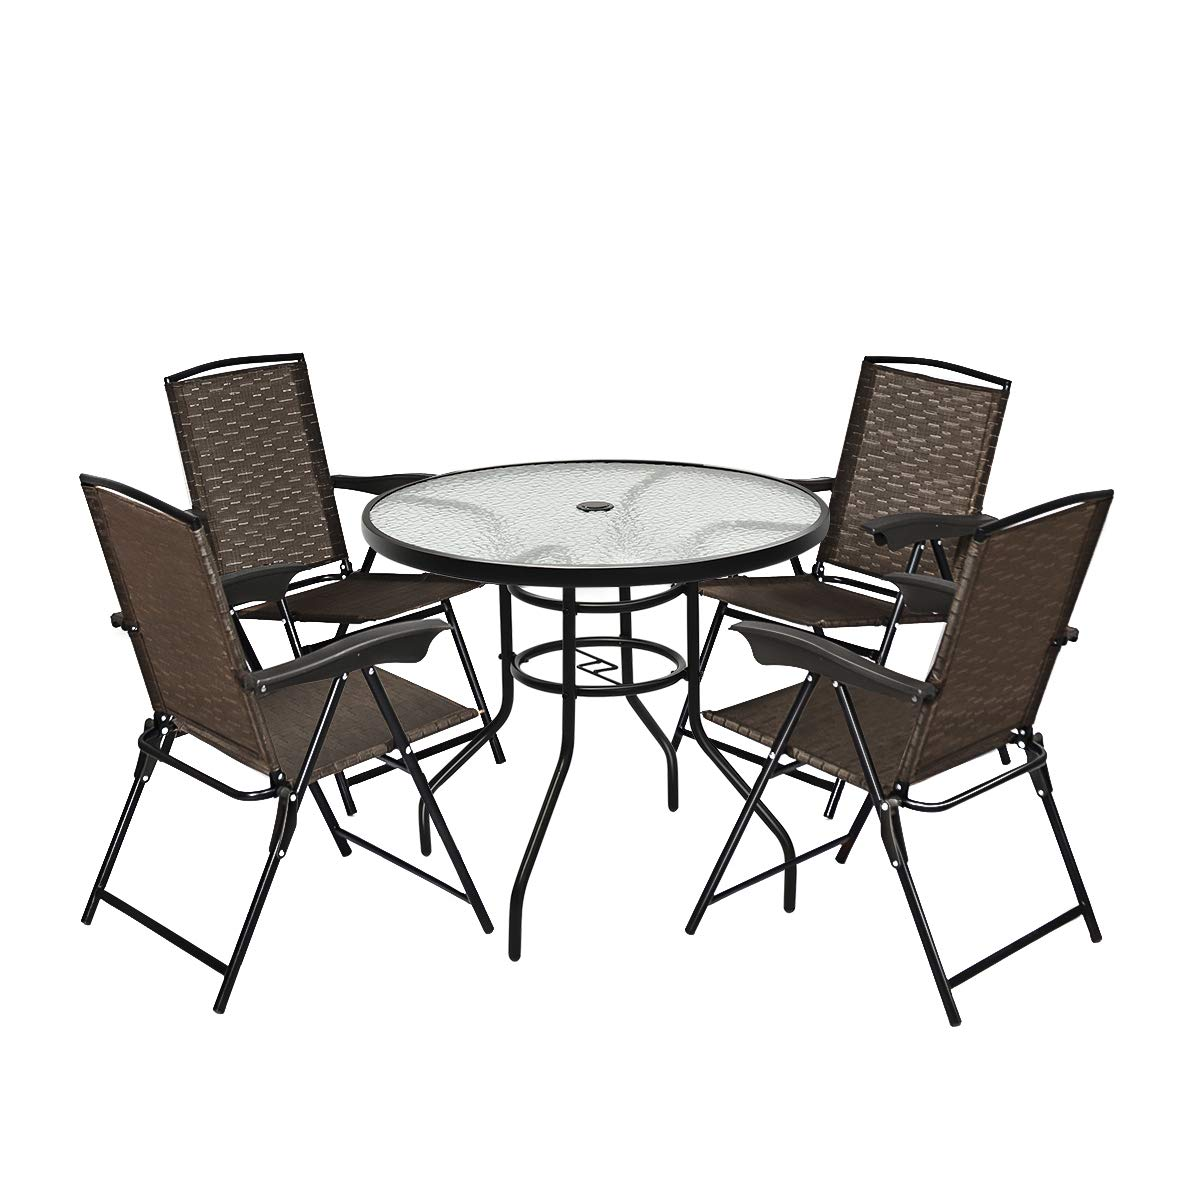 Goplus 5-Piece Bistro Set Outdoor Patio Furniture Weather Resistant Garden Round Table and 4 Folding Sling Chairs 4 Sling Chairs Classic Table